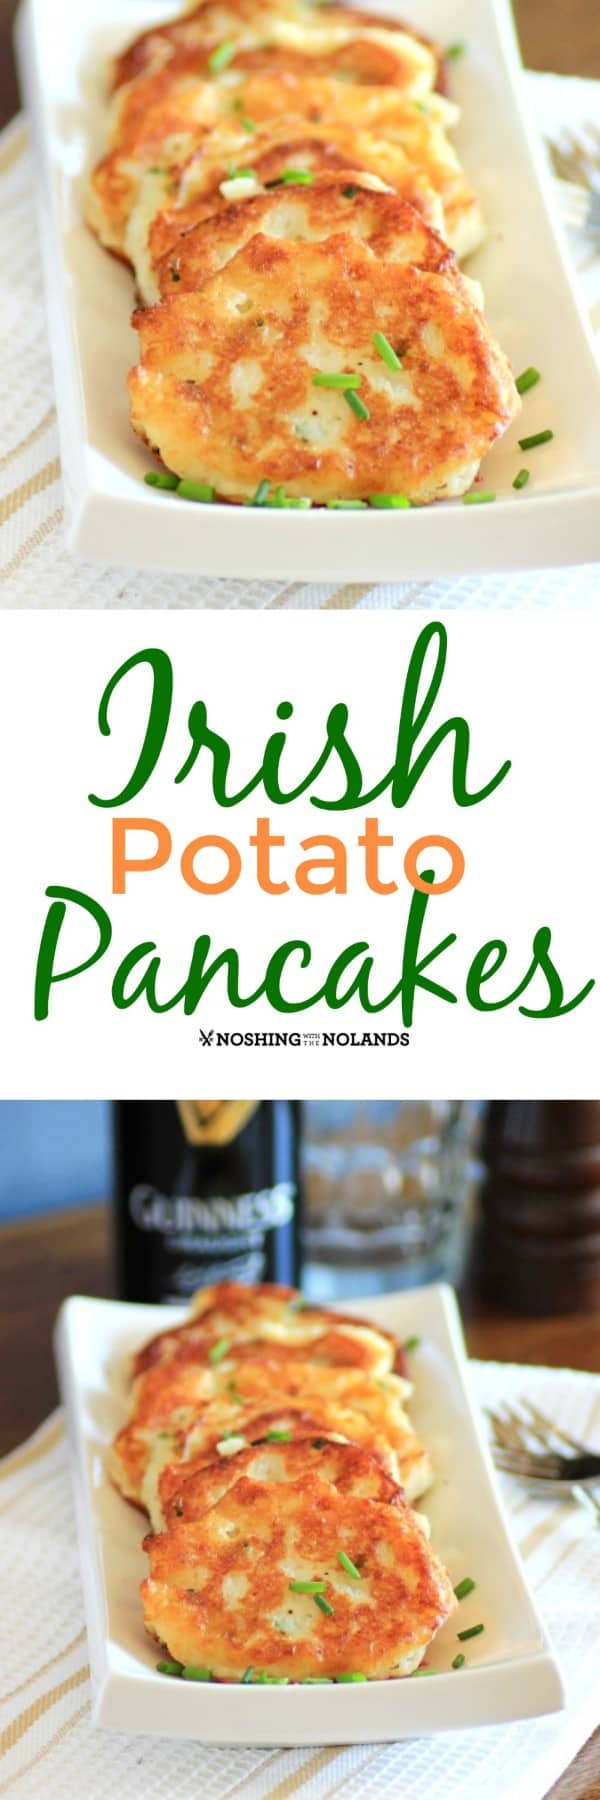 These Irish Potato Pancakes have been a favorite of mine since I was young and my Irish grandmother would make them for me. #potatopancakes #Irish